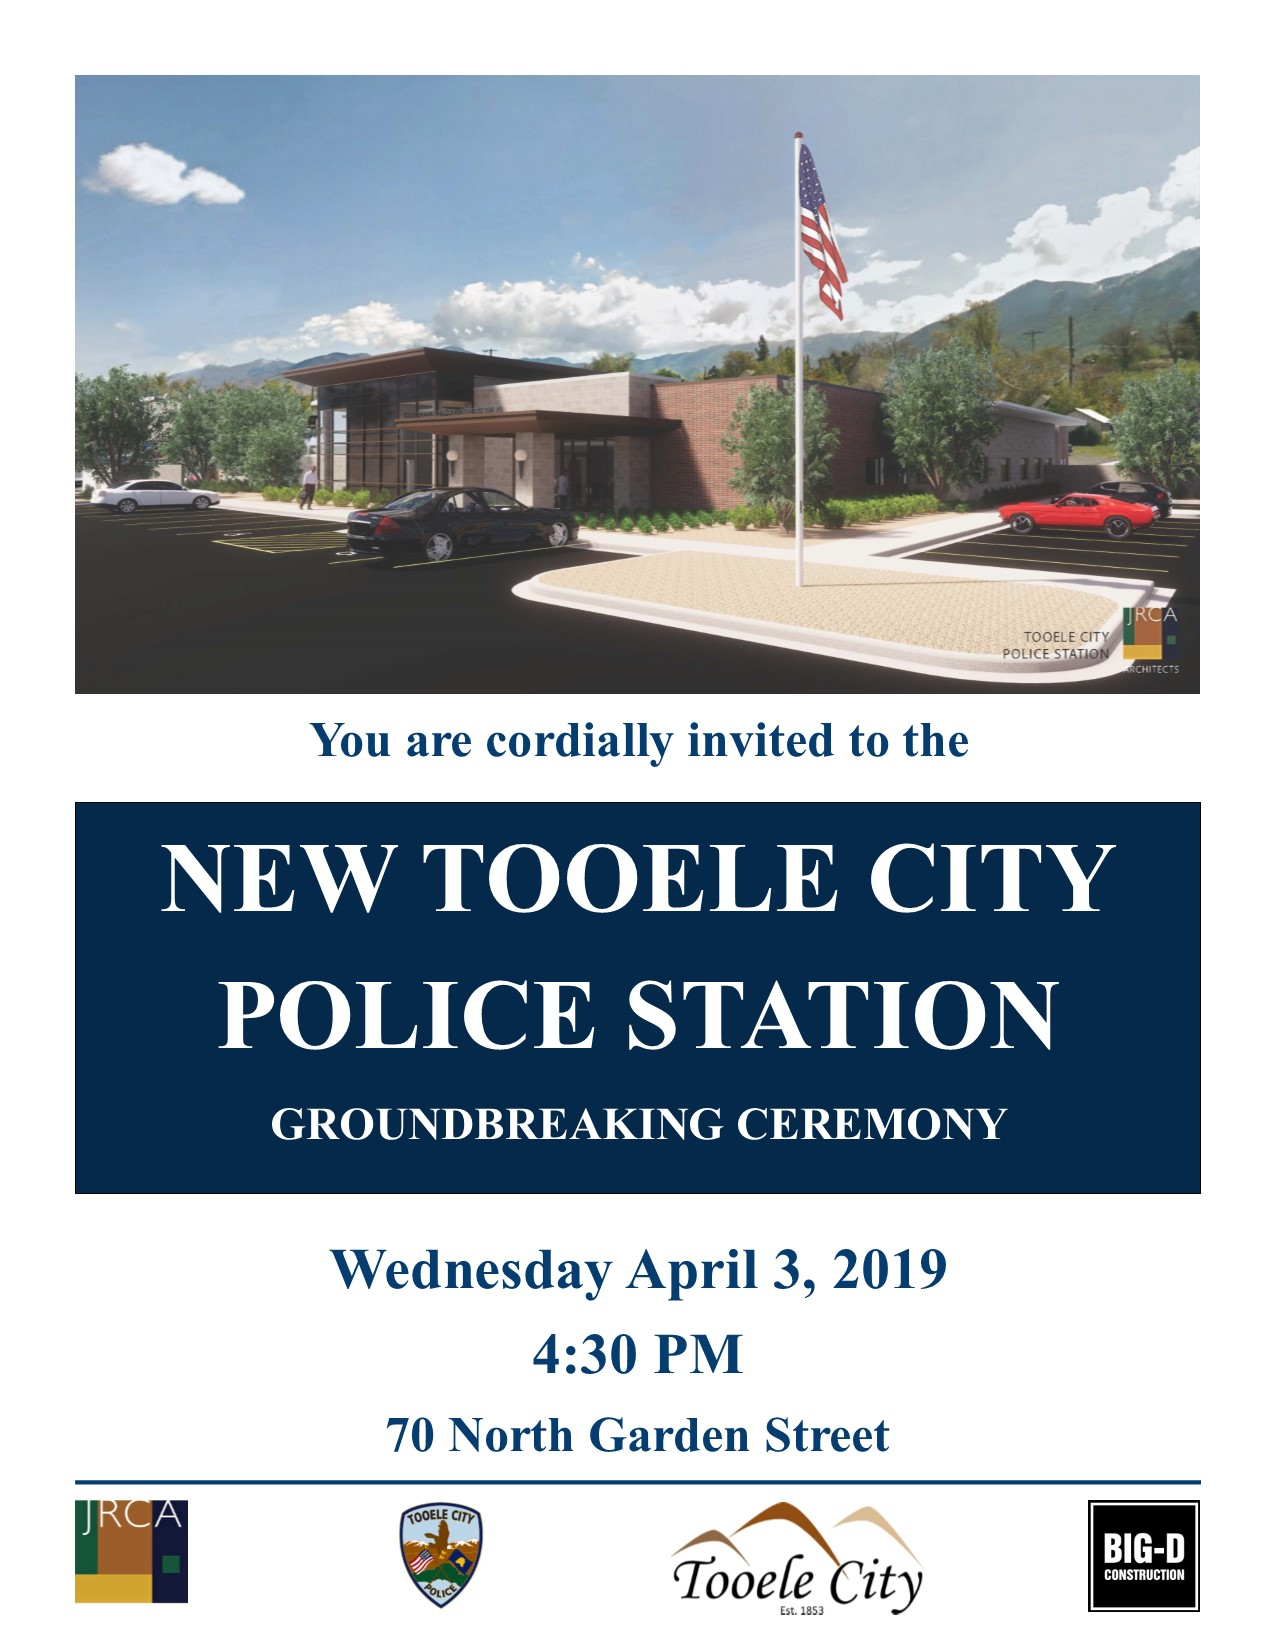 NEW Tooele City Police Station Groundbreaking Ceremony @ New Tooele City Police Station Site